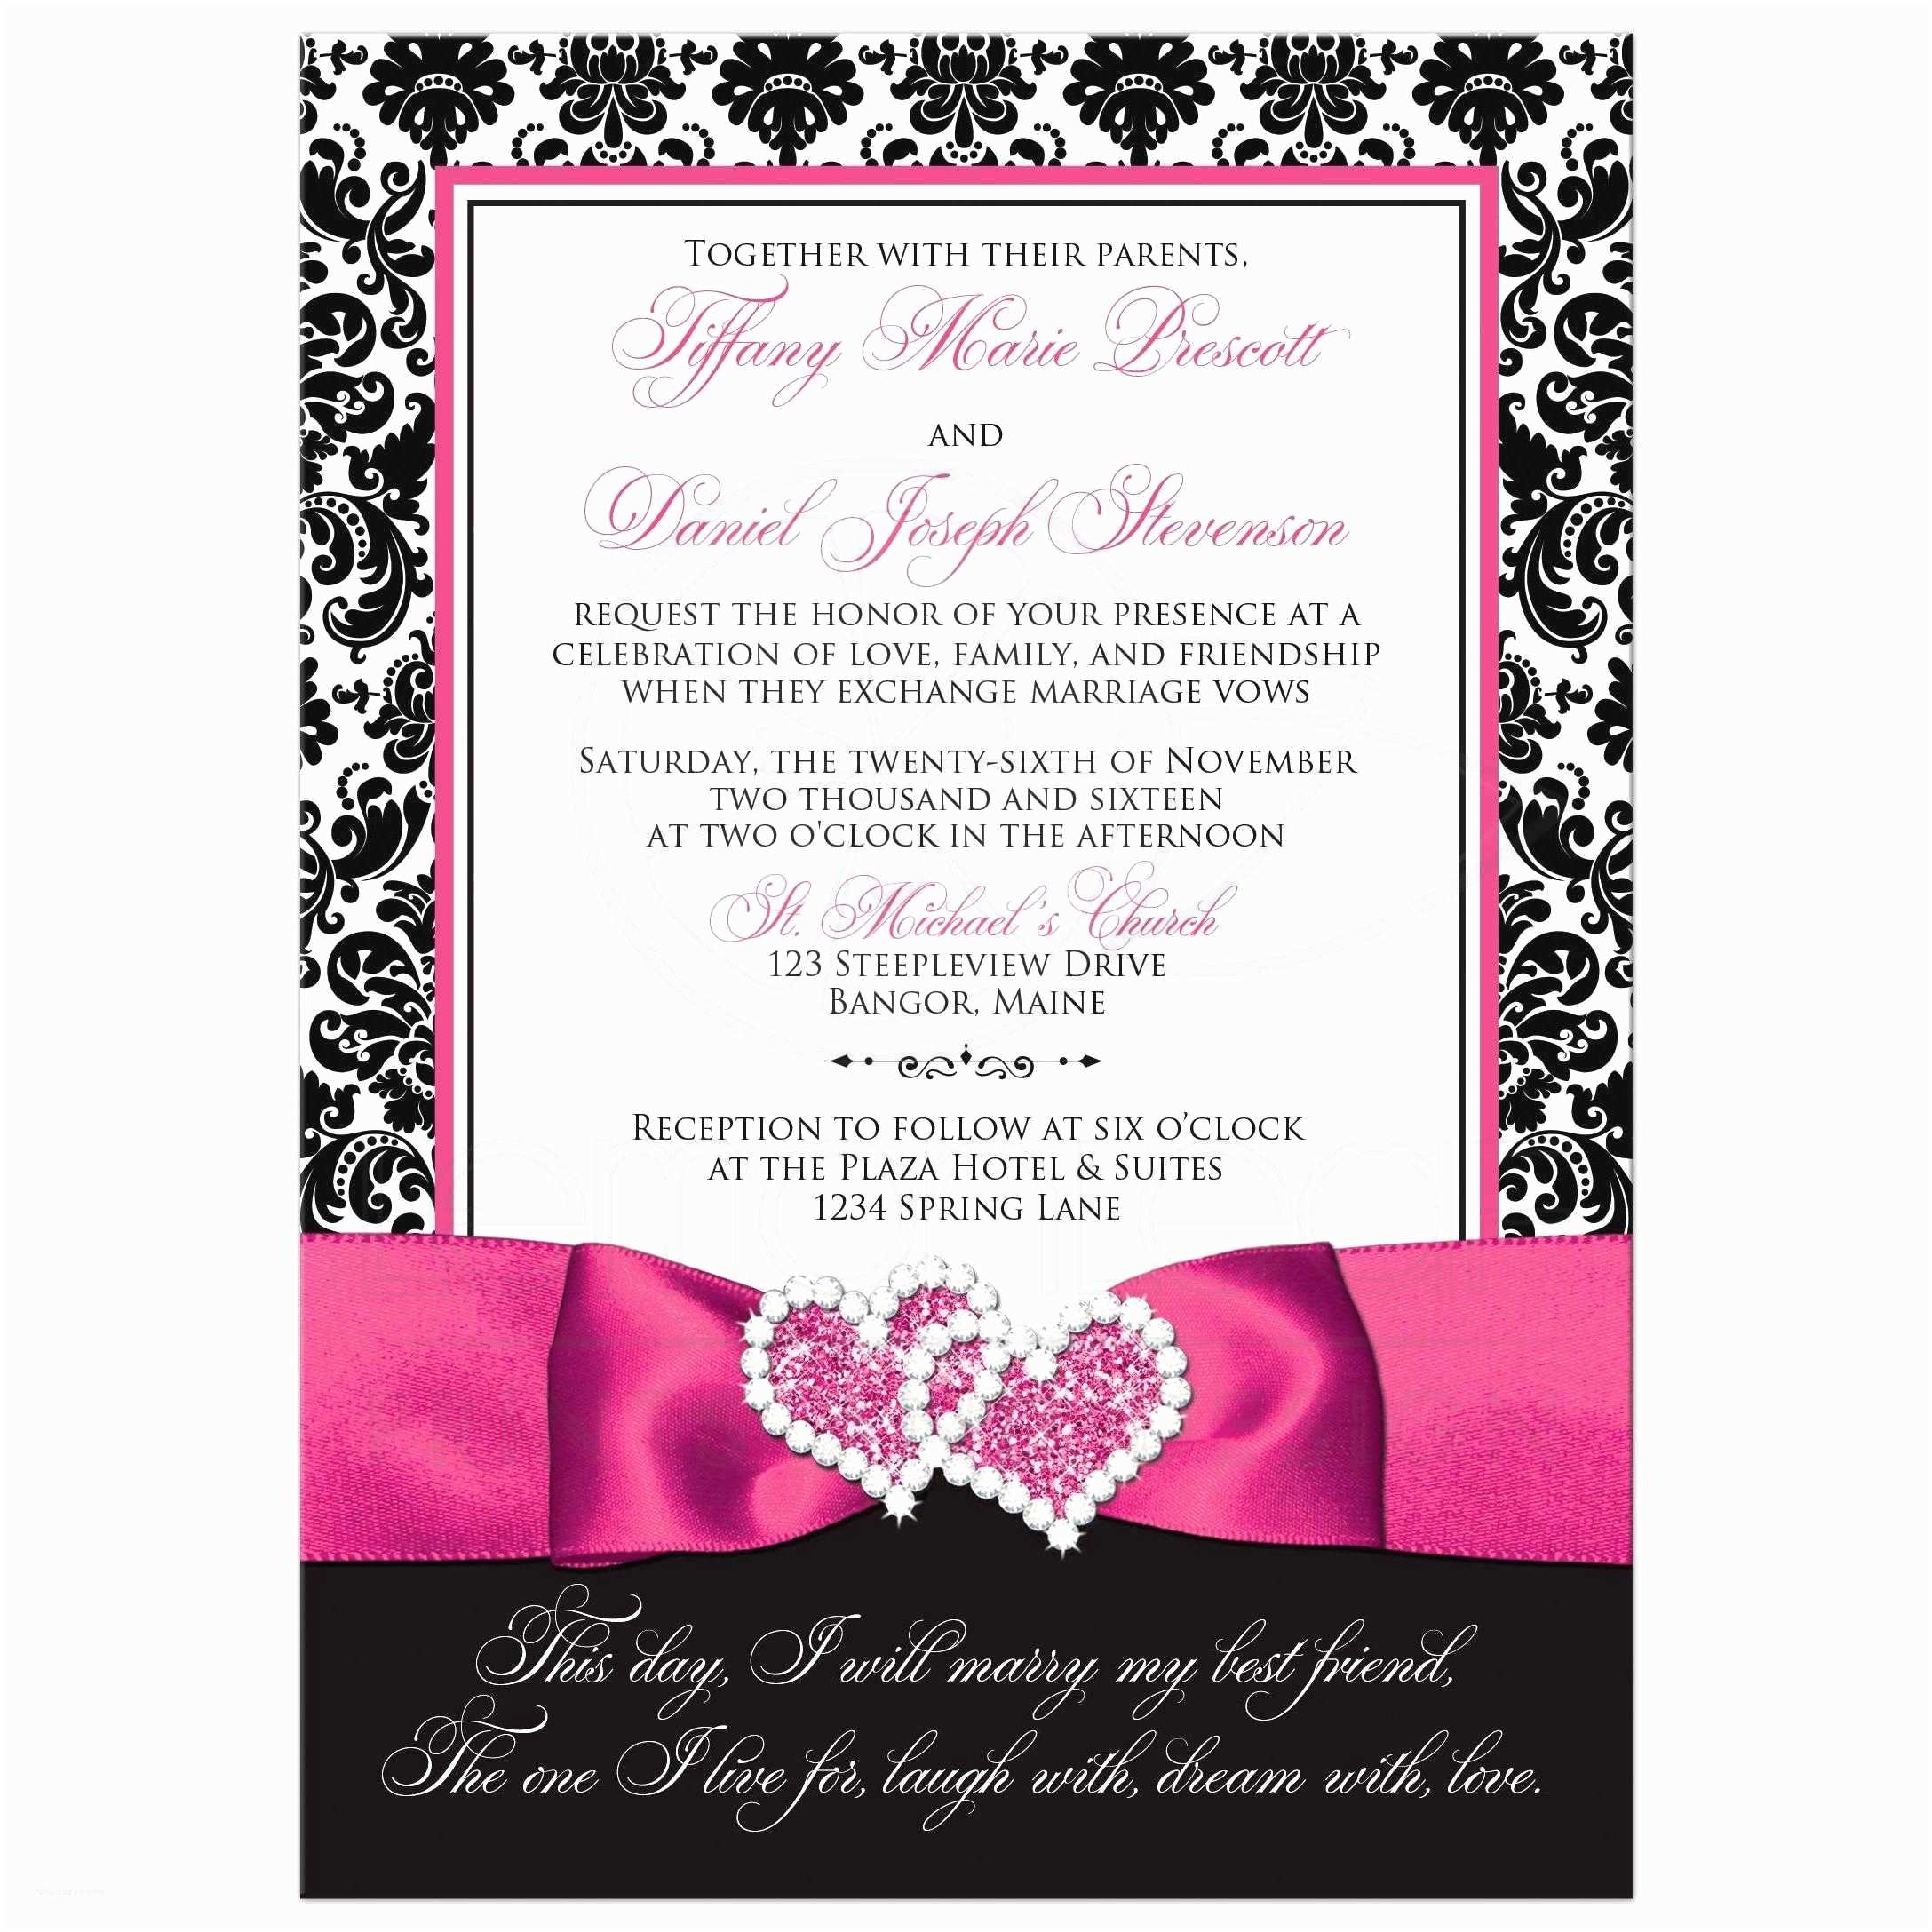 Turquoise and Hot Pink Wedding Invitations Wedding Invitation Photo Optional Black and White Damask Printed Pink Ribbon